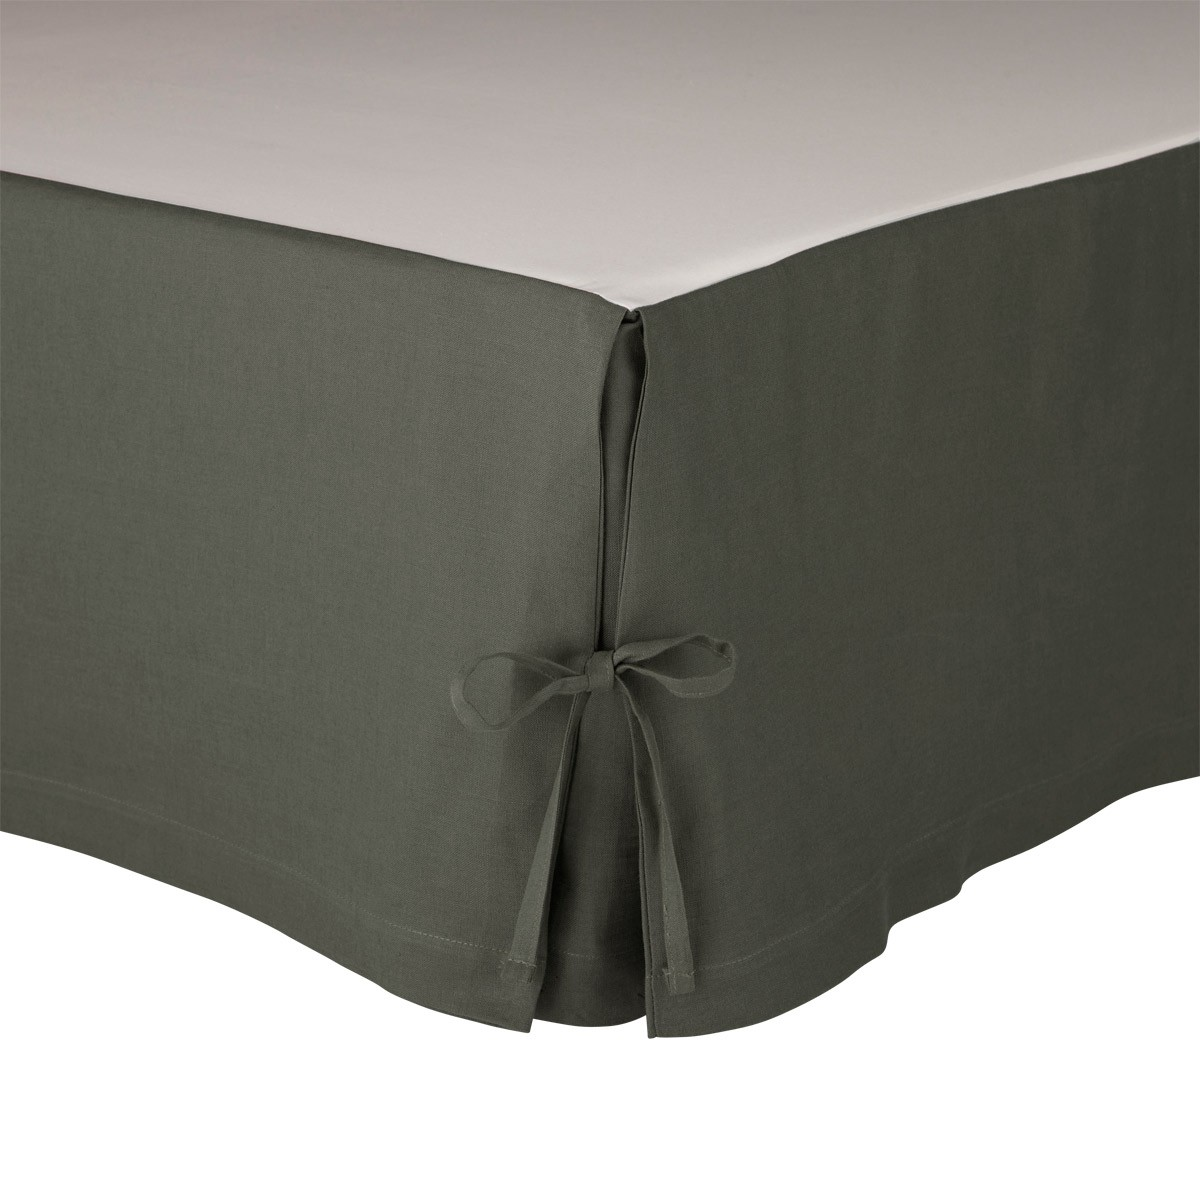 Cache sommier Lin Anthracite 90 x 200 cm (photo)